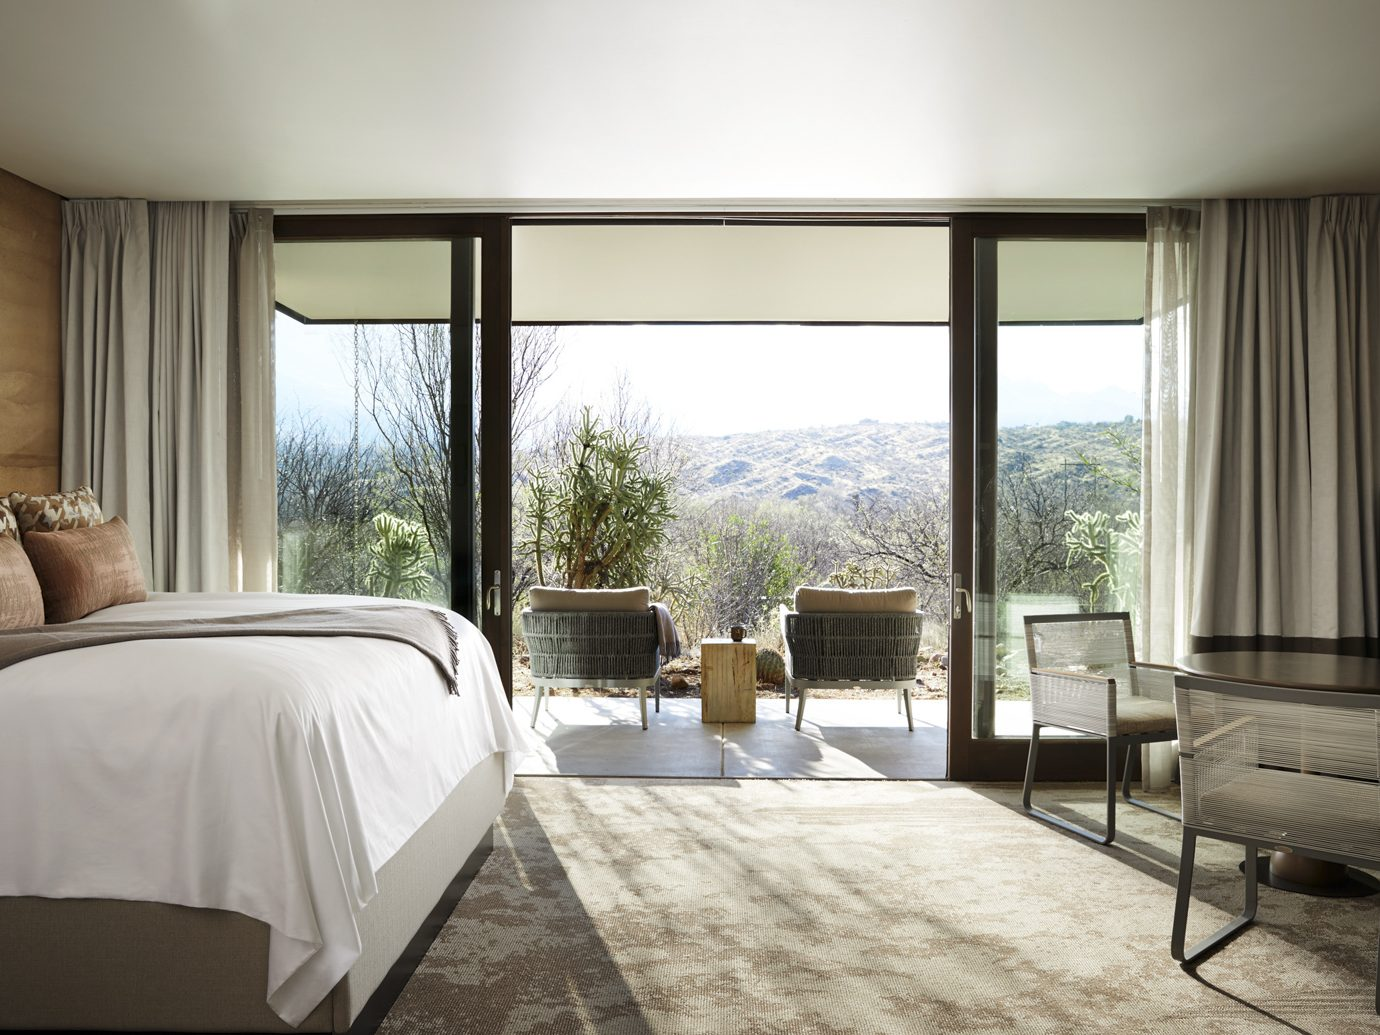 guestroom and patio at Miraval Resort and Spa, Tucson, AZ